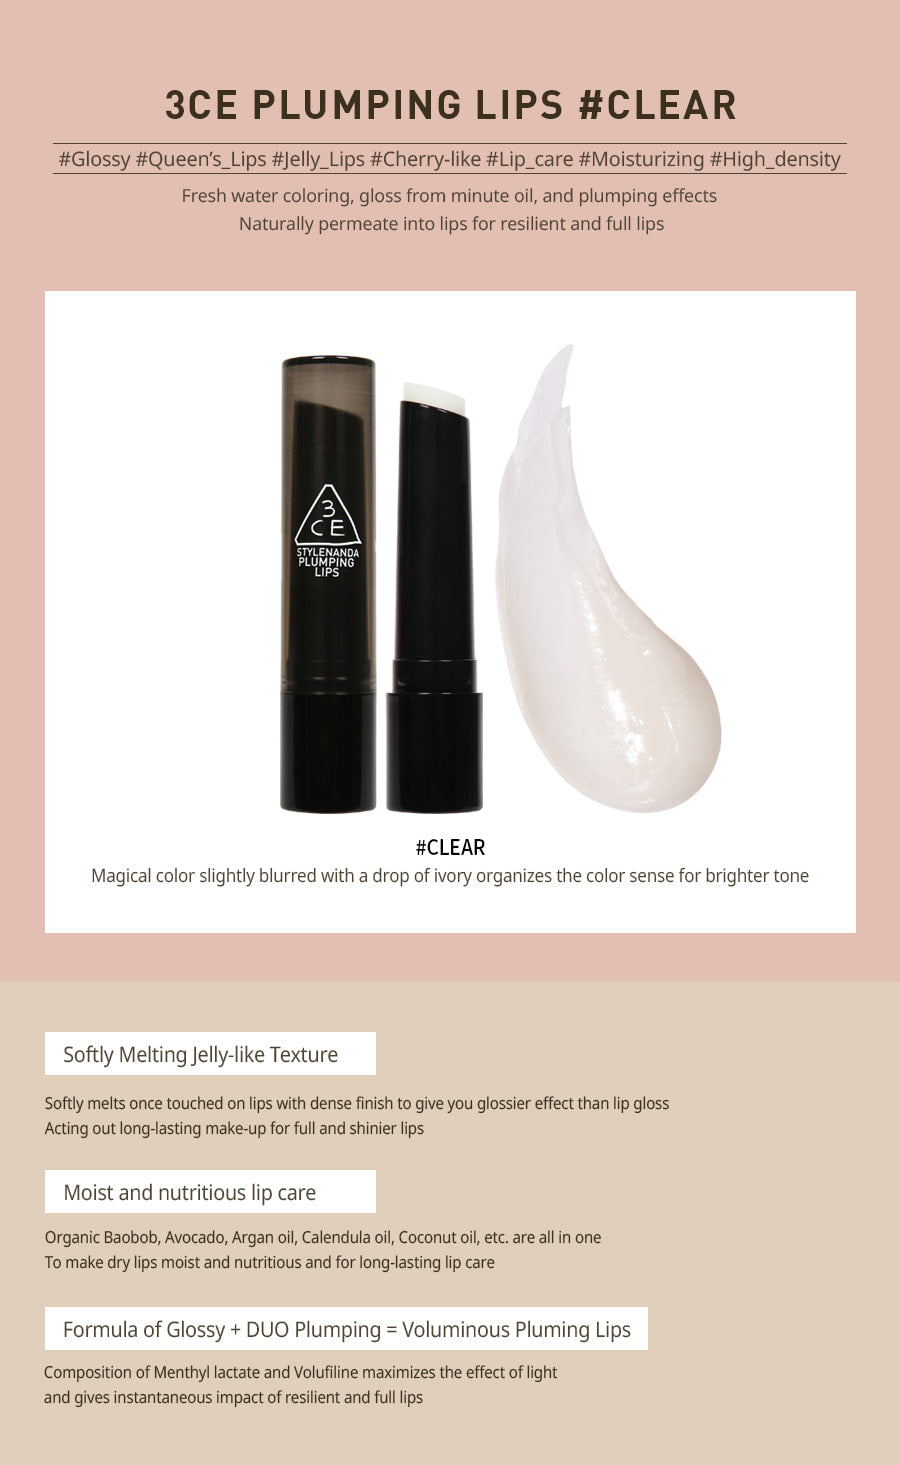 3CE PLUMPING LIPS #CLEAR australia cosme hut